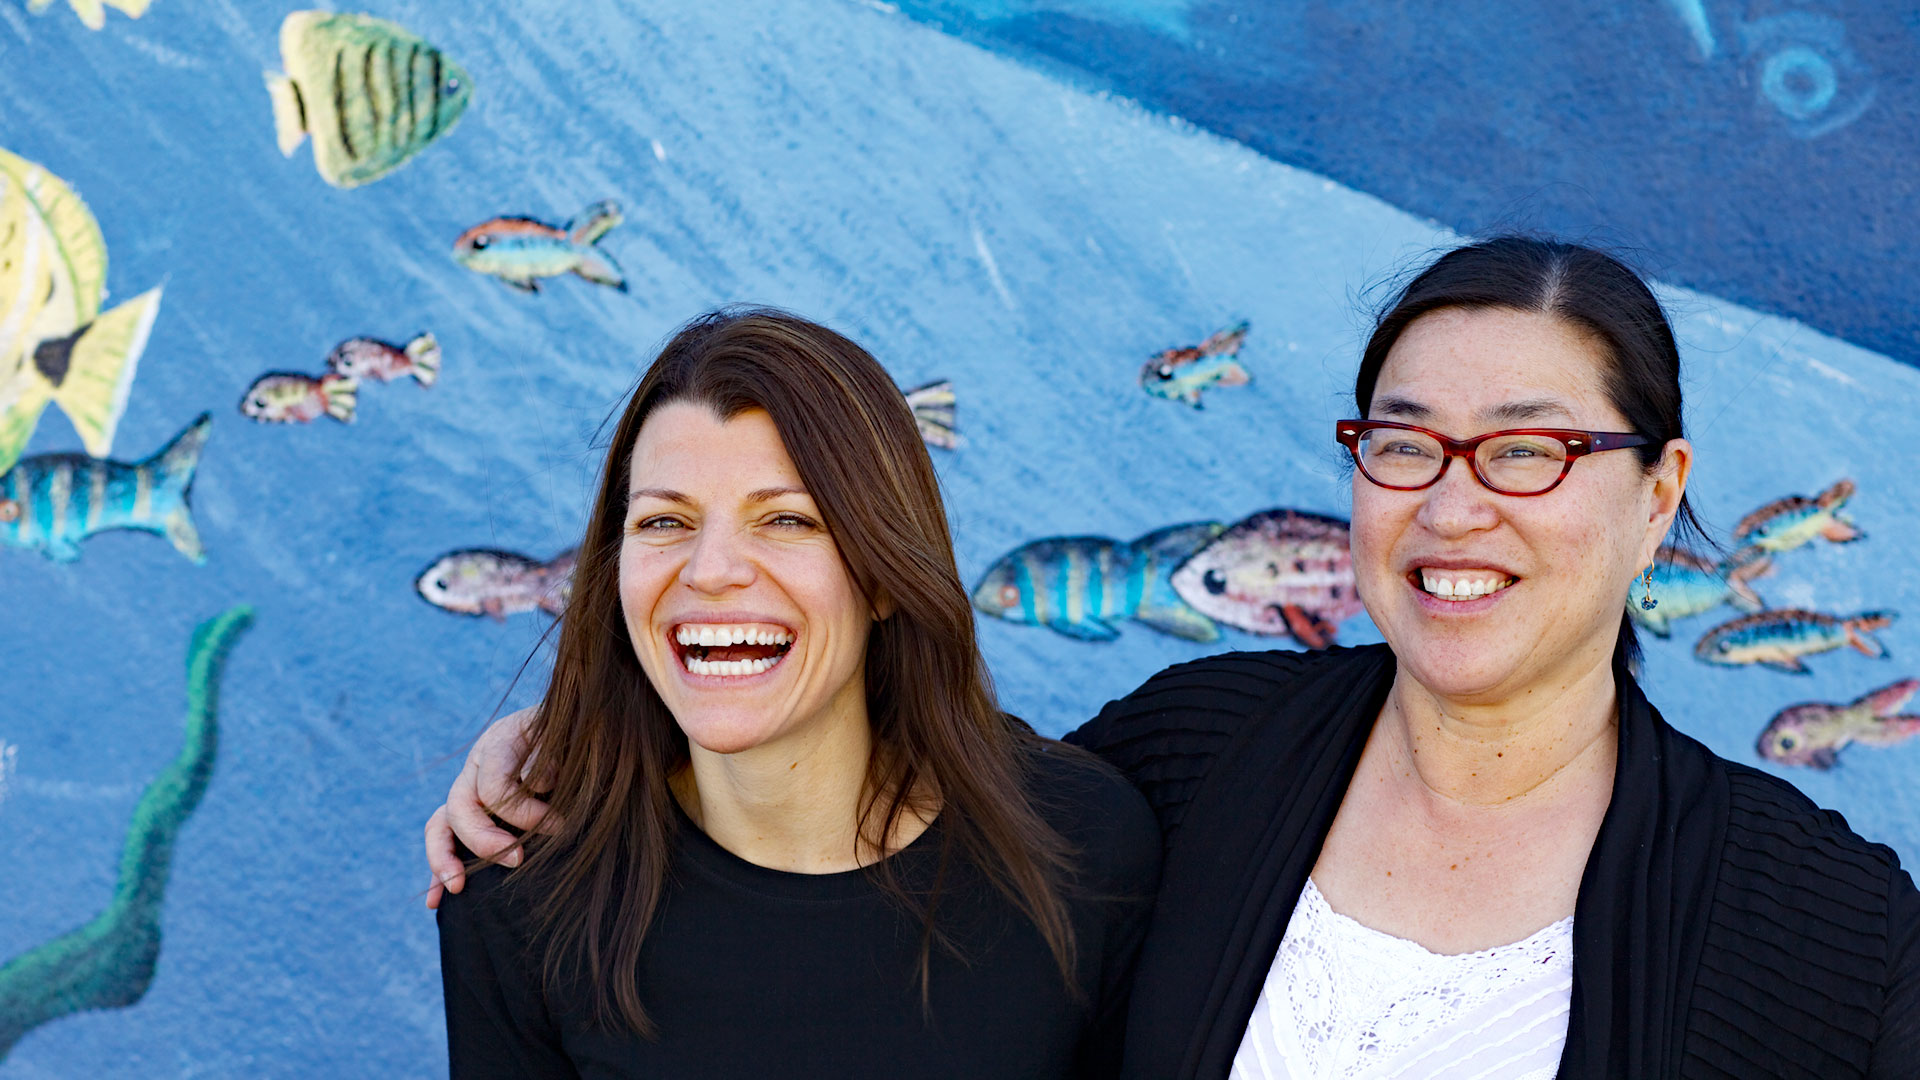 East of Salinas filmmakers Laura Pacheco and Jackie Mow (l-r), in front of a sea-themed mural.